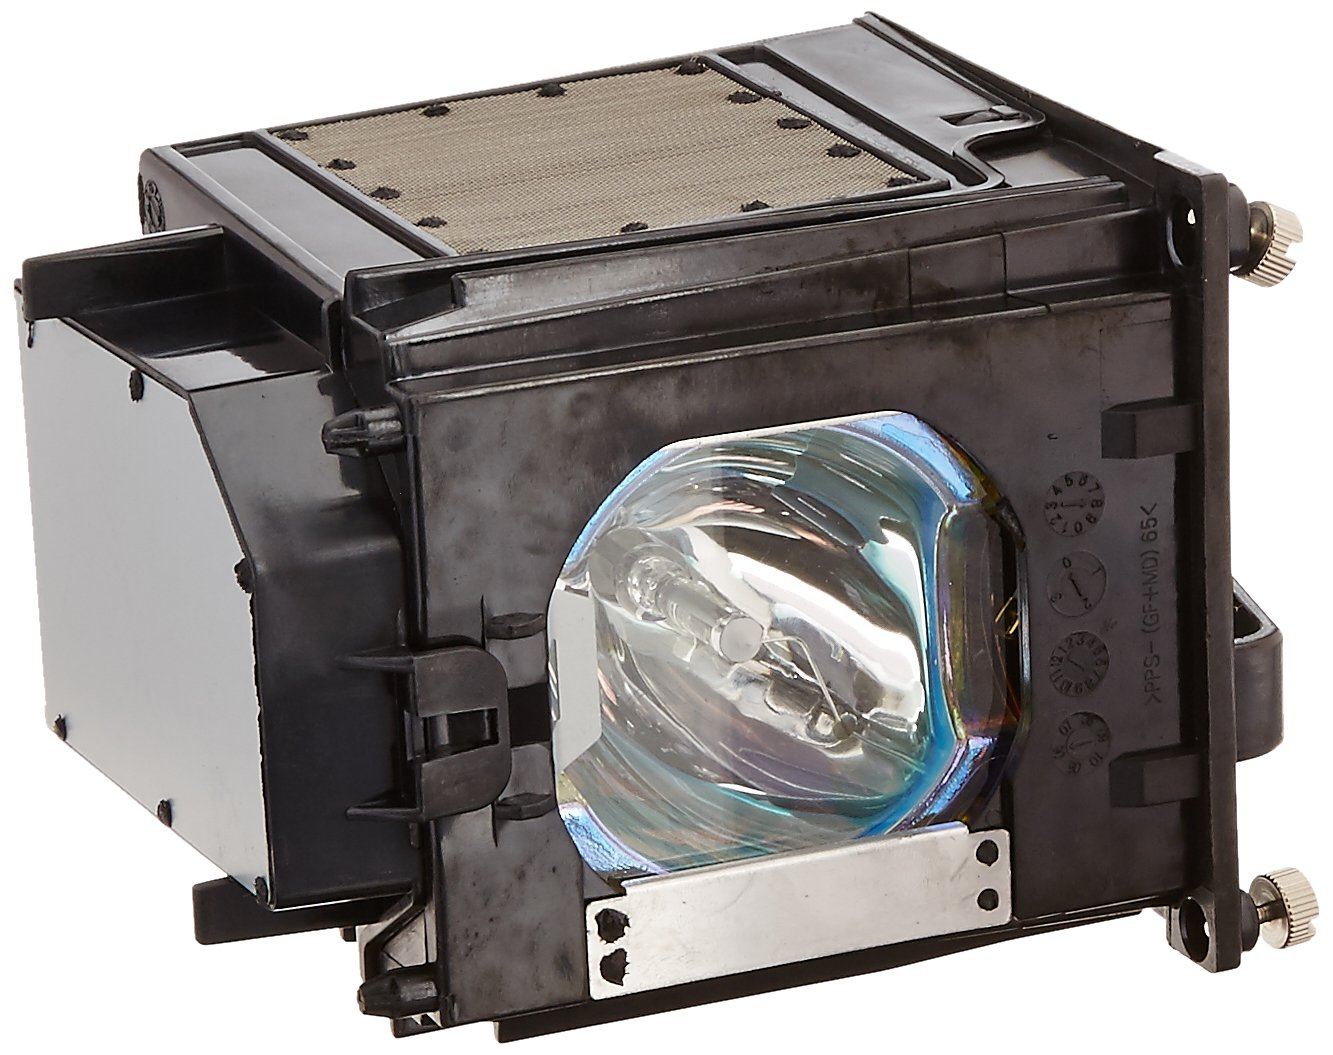 OEM WD-52628//WD52628 Replacement Lamp for Mitsubishi TV Philips Inside